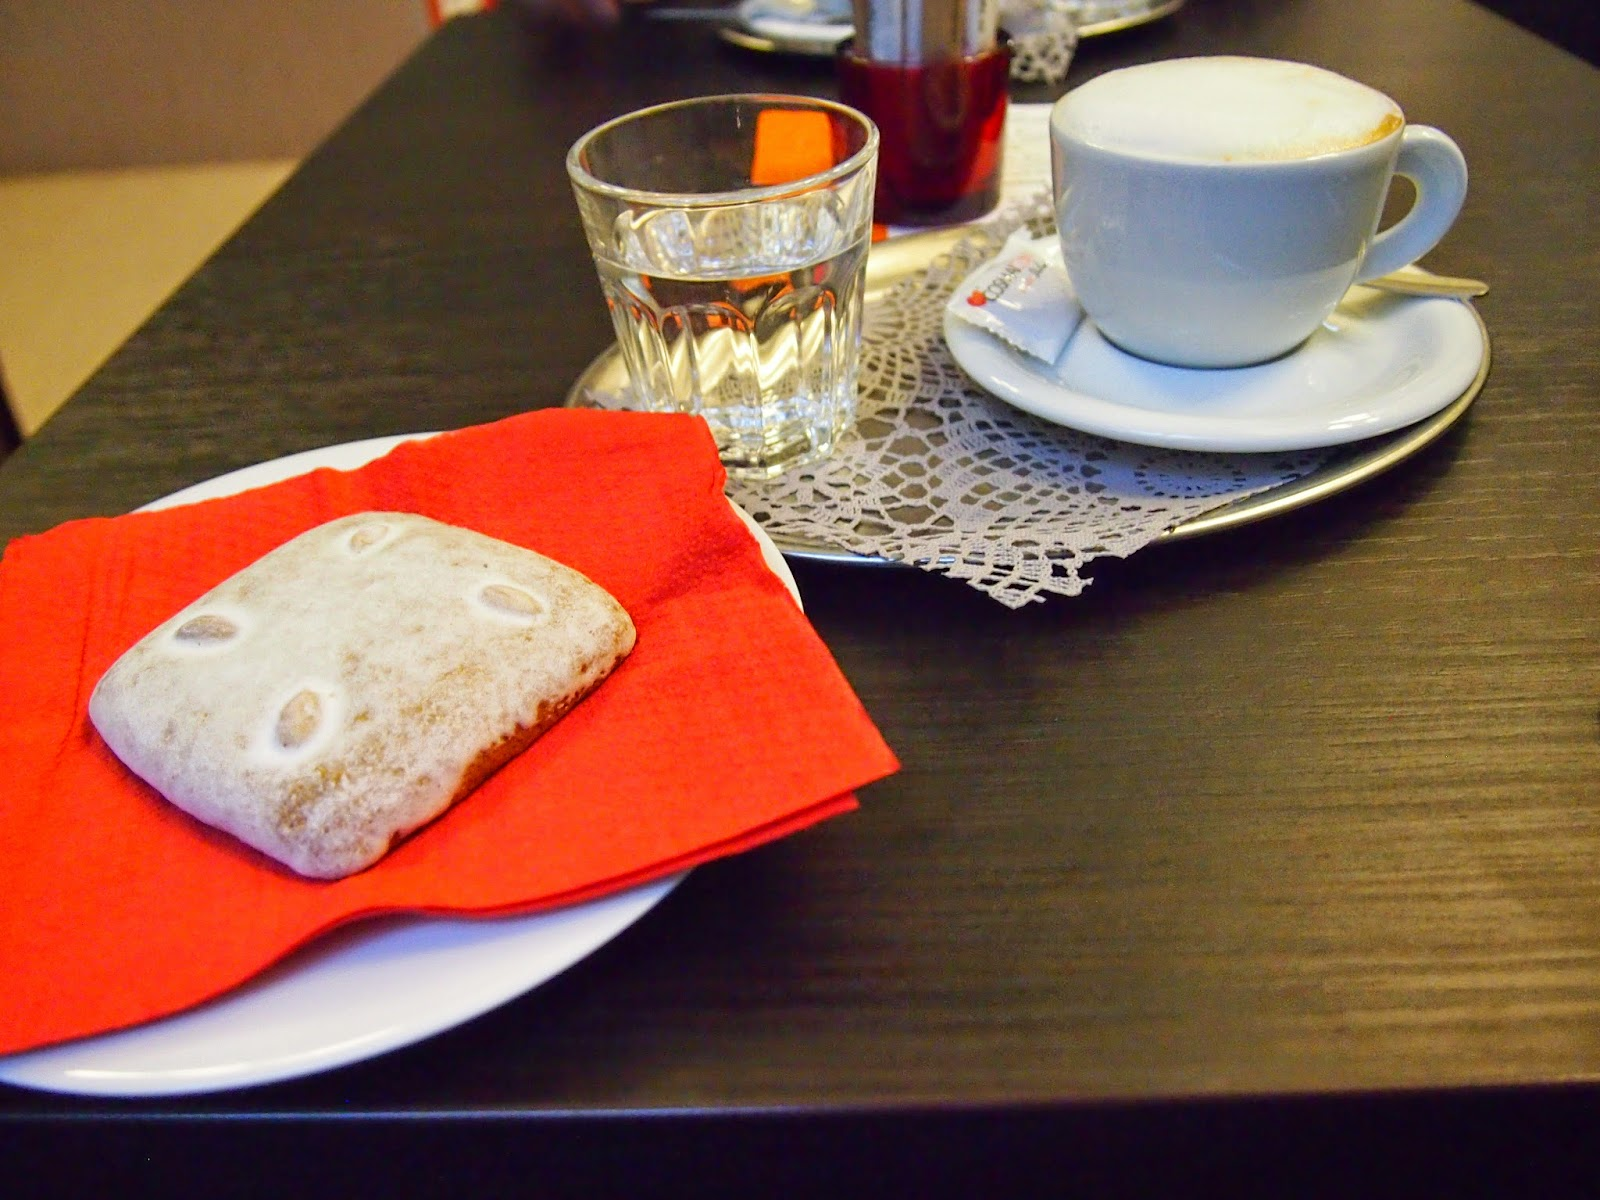 Treats at the Leica Cafe in Prague